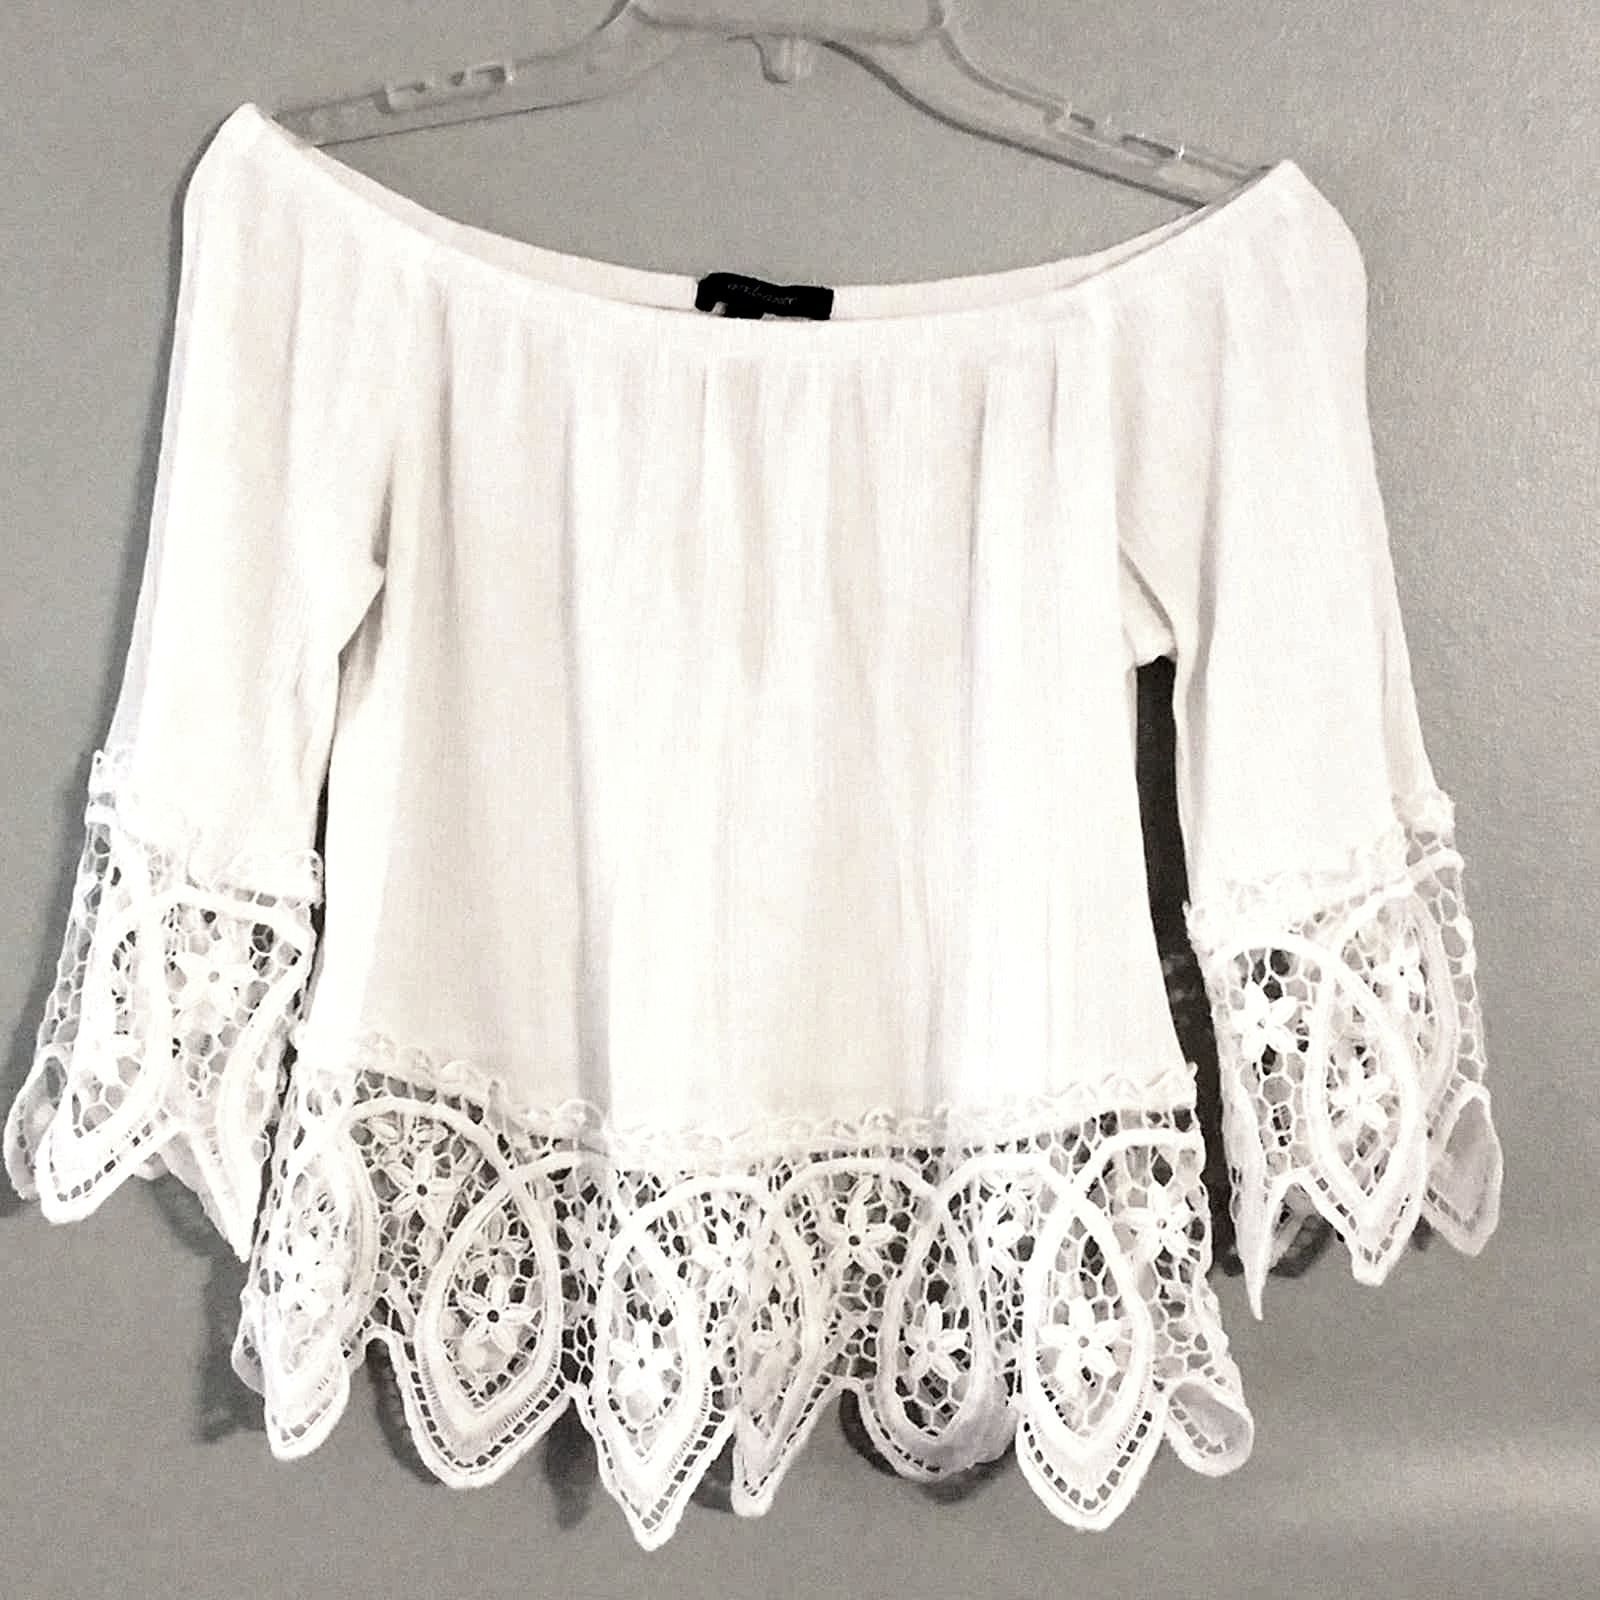 Ambiance White Lacey Fairycore crop top - image 1